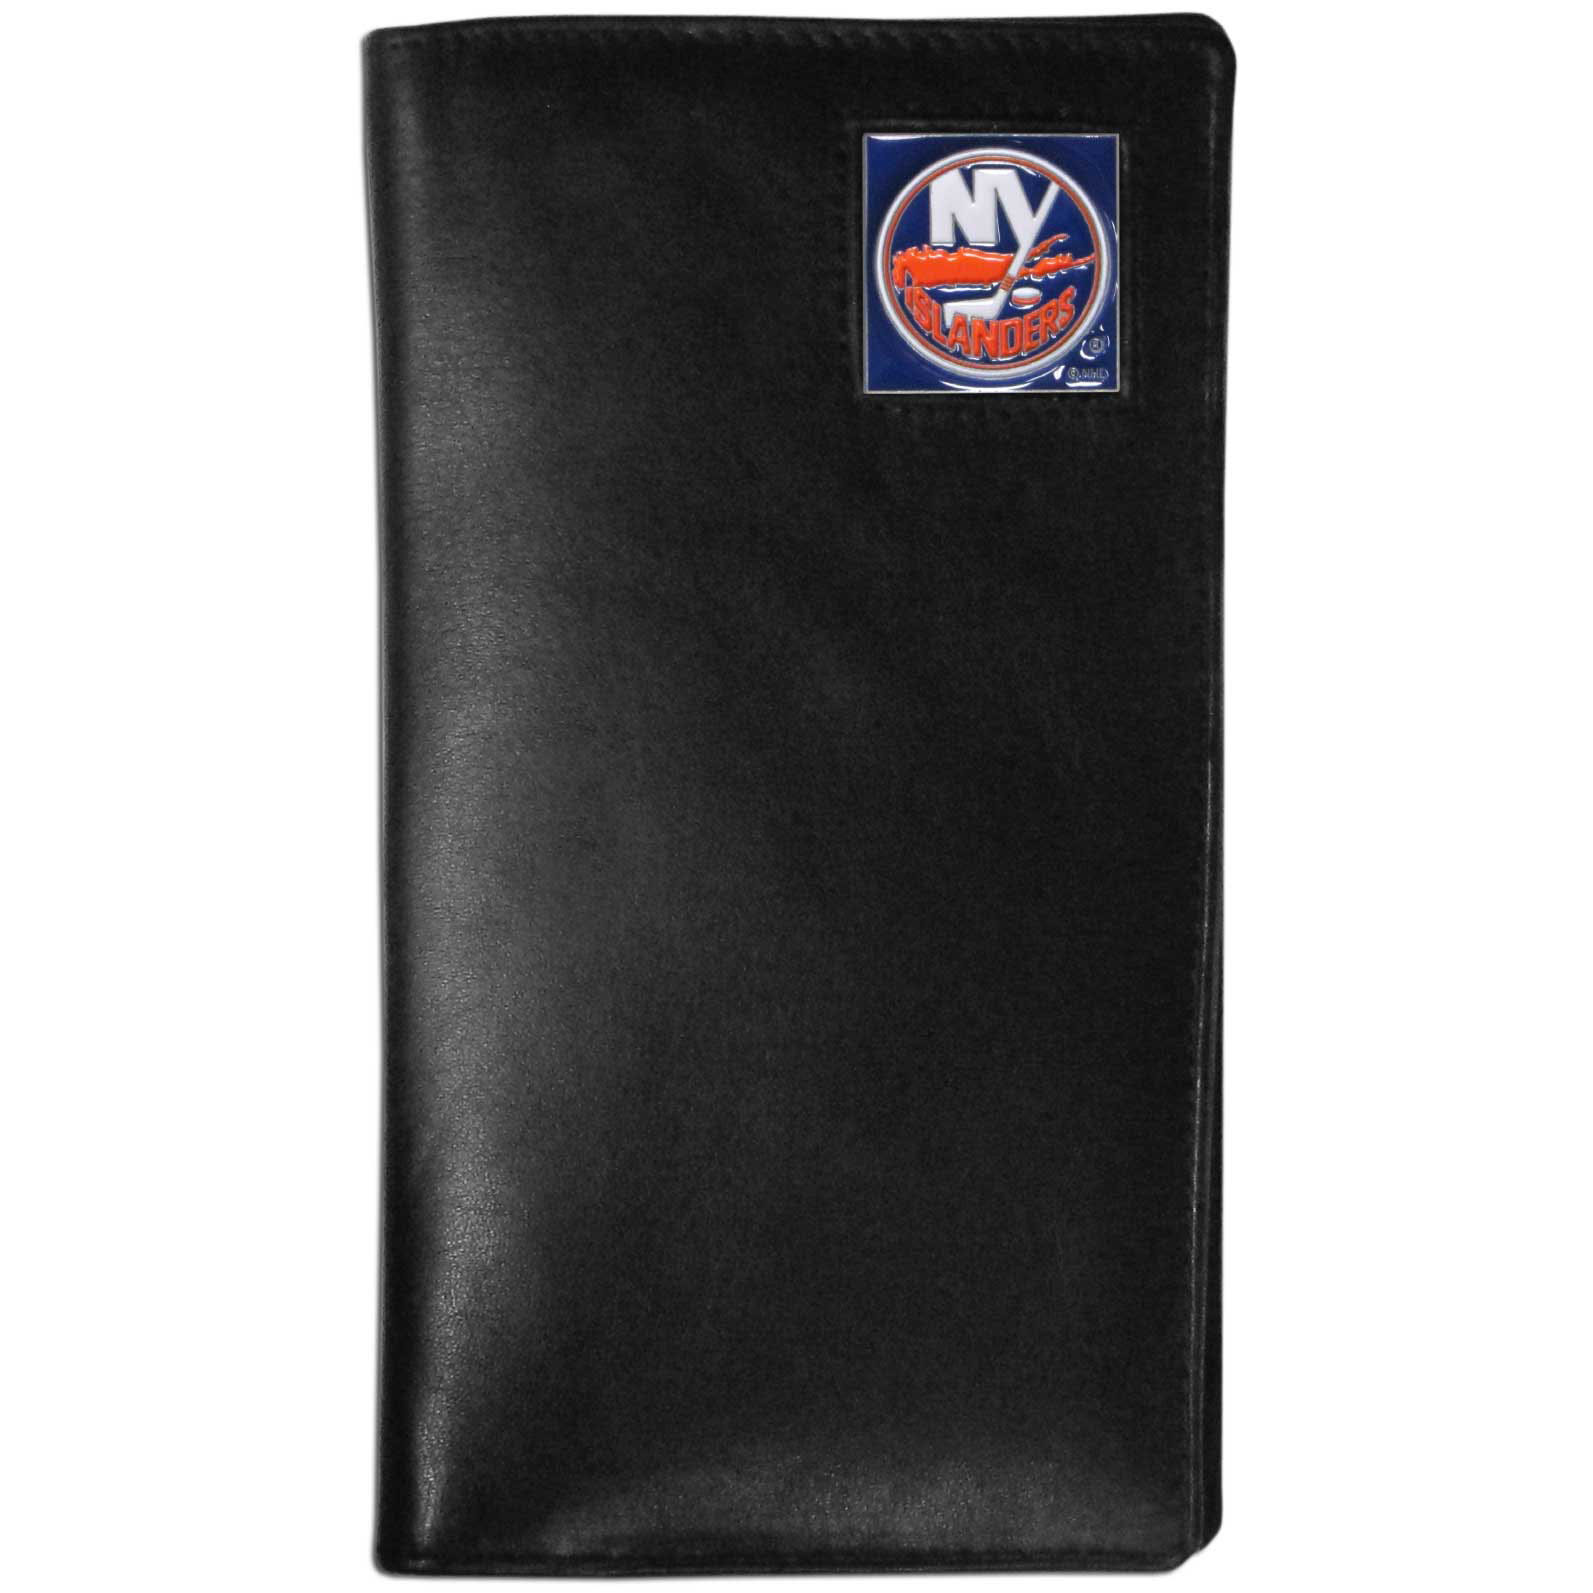 New York Islanders® Leather Tall Wallet - Our officially licensed tall leather wallet cover is made of high quality leather with a fully cast metal New York Islanders® emblem with enameled team color detail. The cover fits both side and top loaded checks and includes a large zippered pocket, windowed ID slot, numerous credit card slots and billfold pocket.